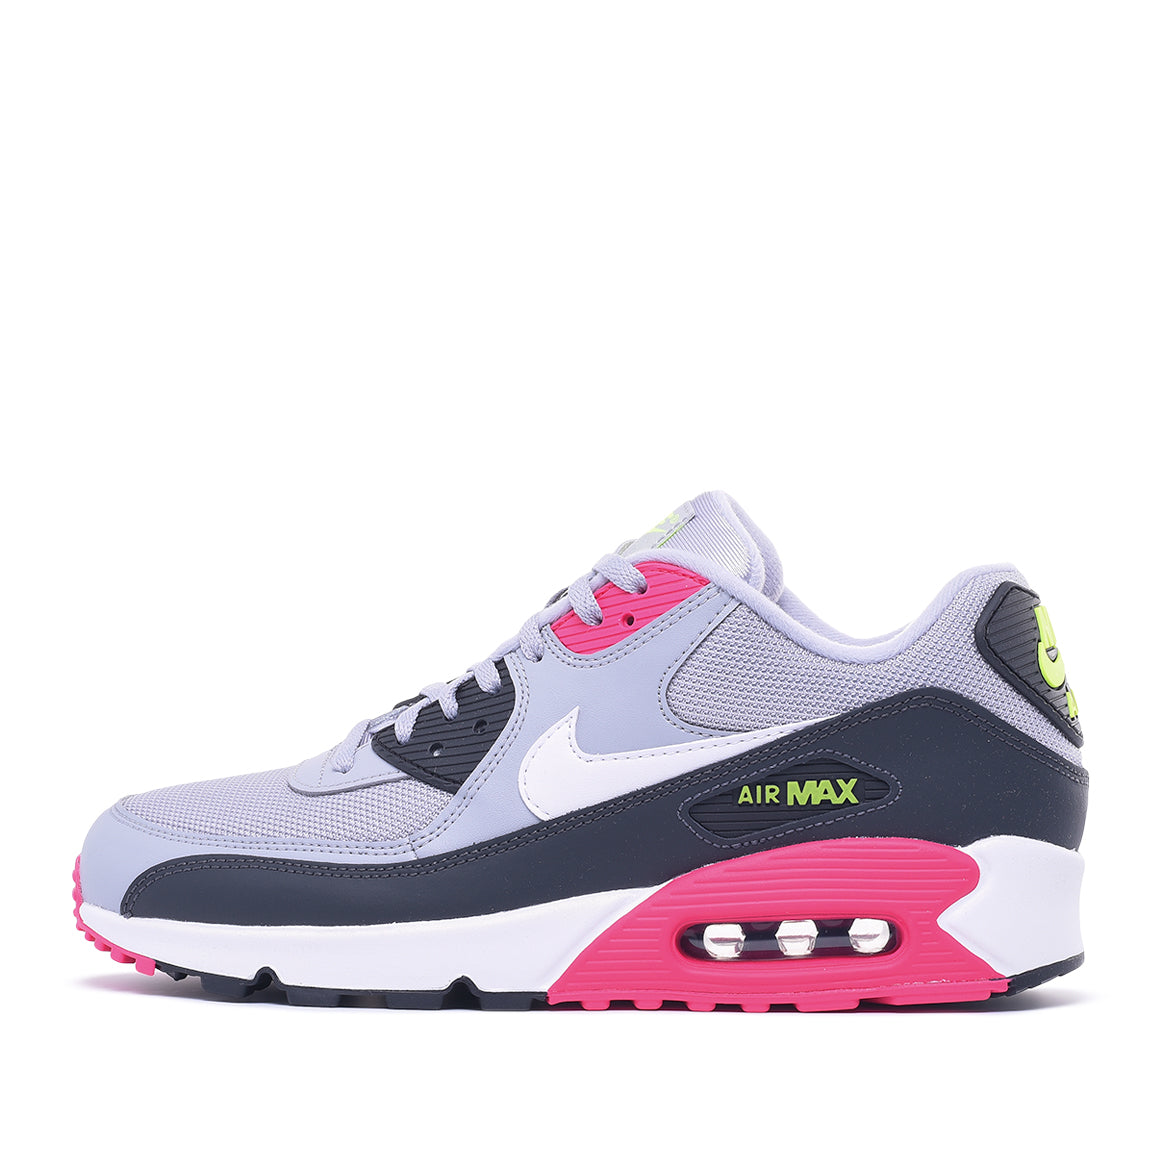 best website 5c209 7bd84 AIR MAX 90 ESSENTIAL - WOLF GREY   WHITE   RUSH PINK   City Blue